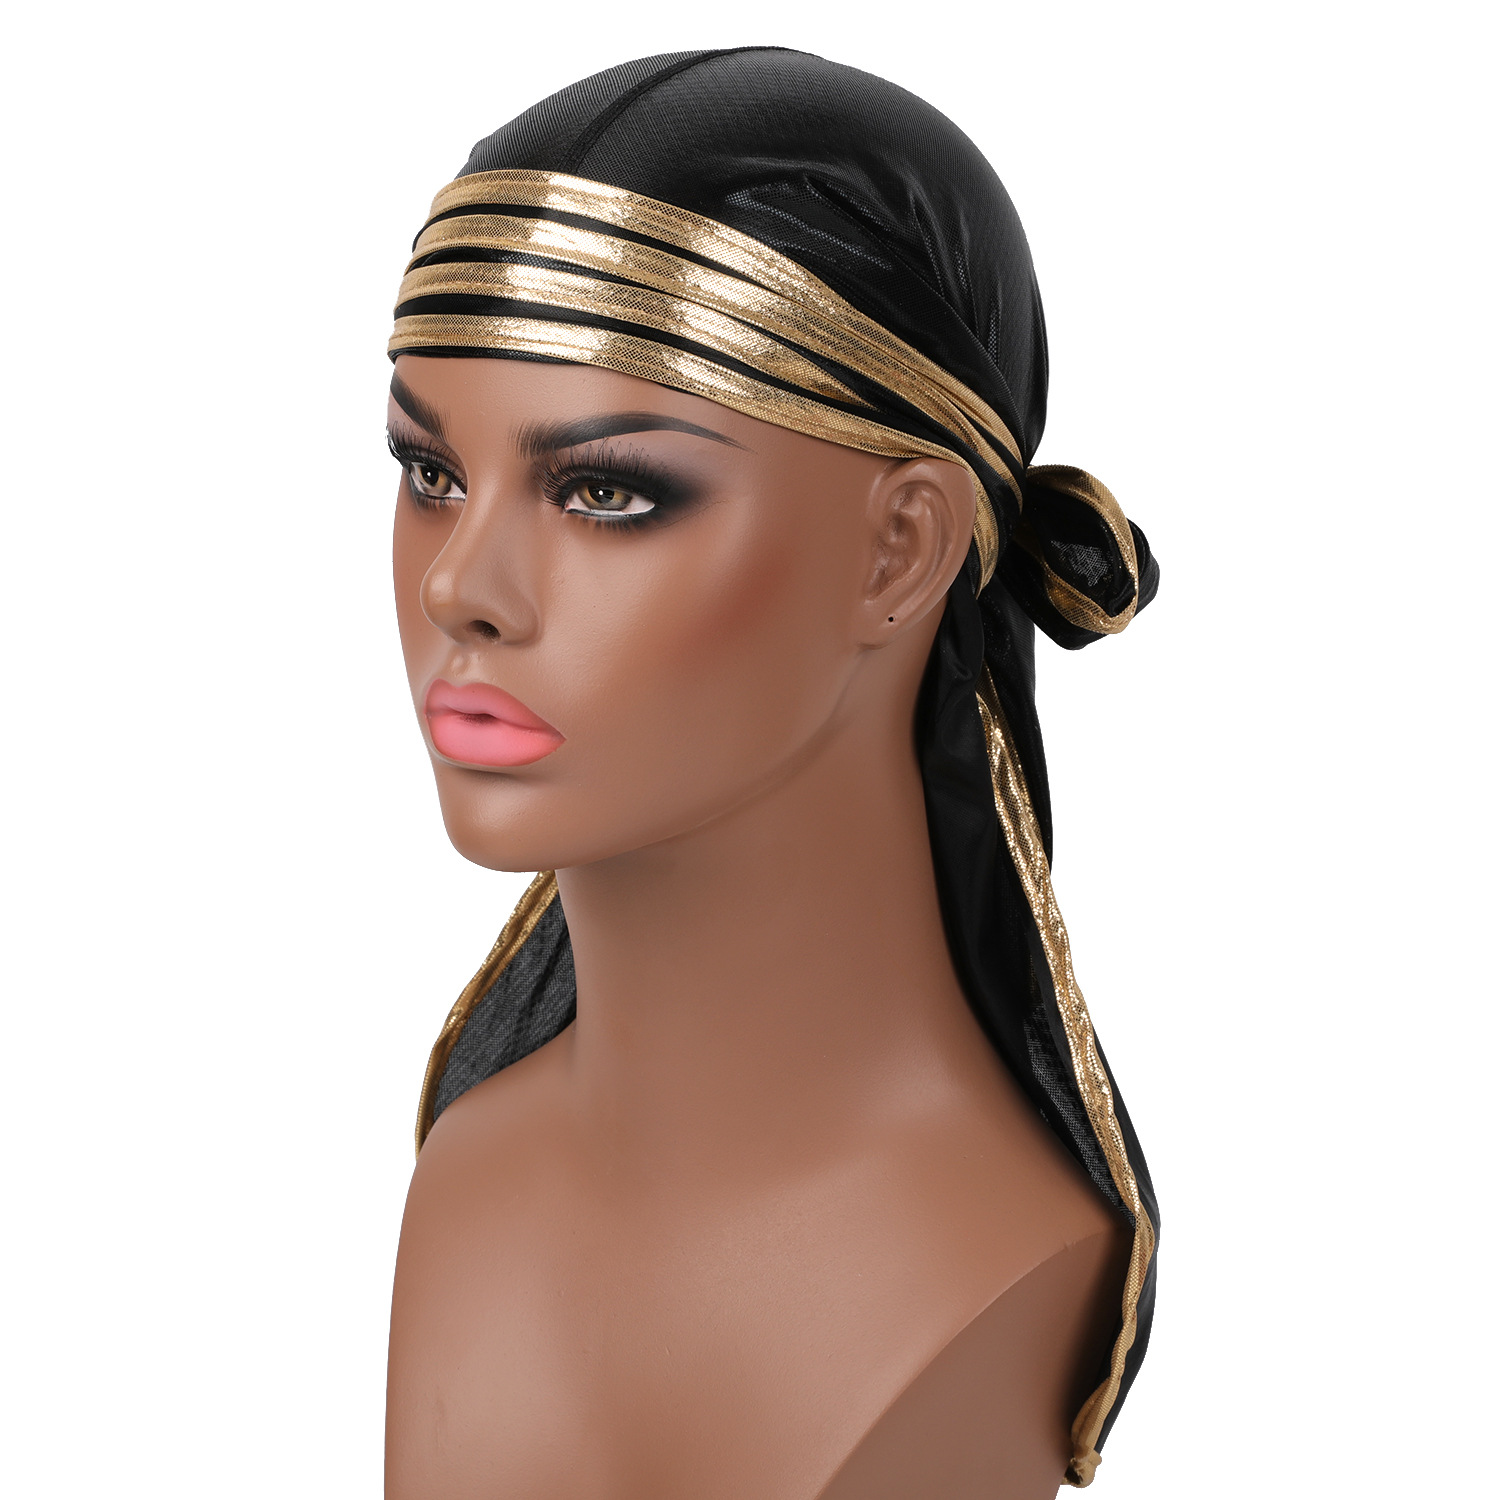 2019 <font><b>Men</b></font> Women Sparkly Satin <font><b>Silk</b></font> <font><b>Durags</b></font> Bandanas Turban Hat Wigs Doo Stripe Long Tail Du-Rag Biker Pirate Hat Headband image